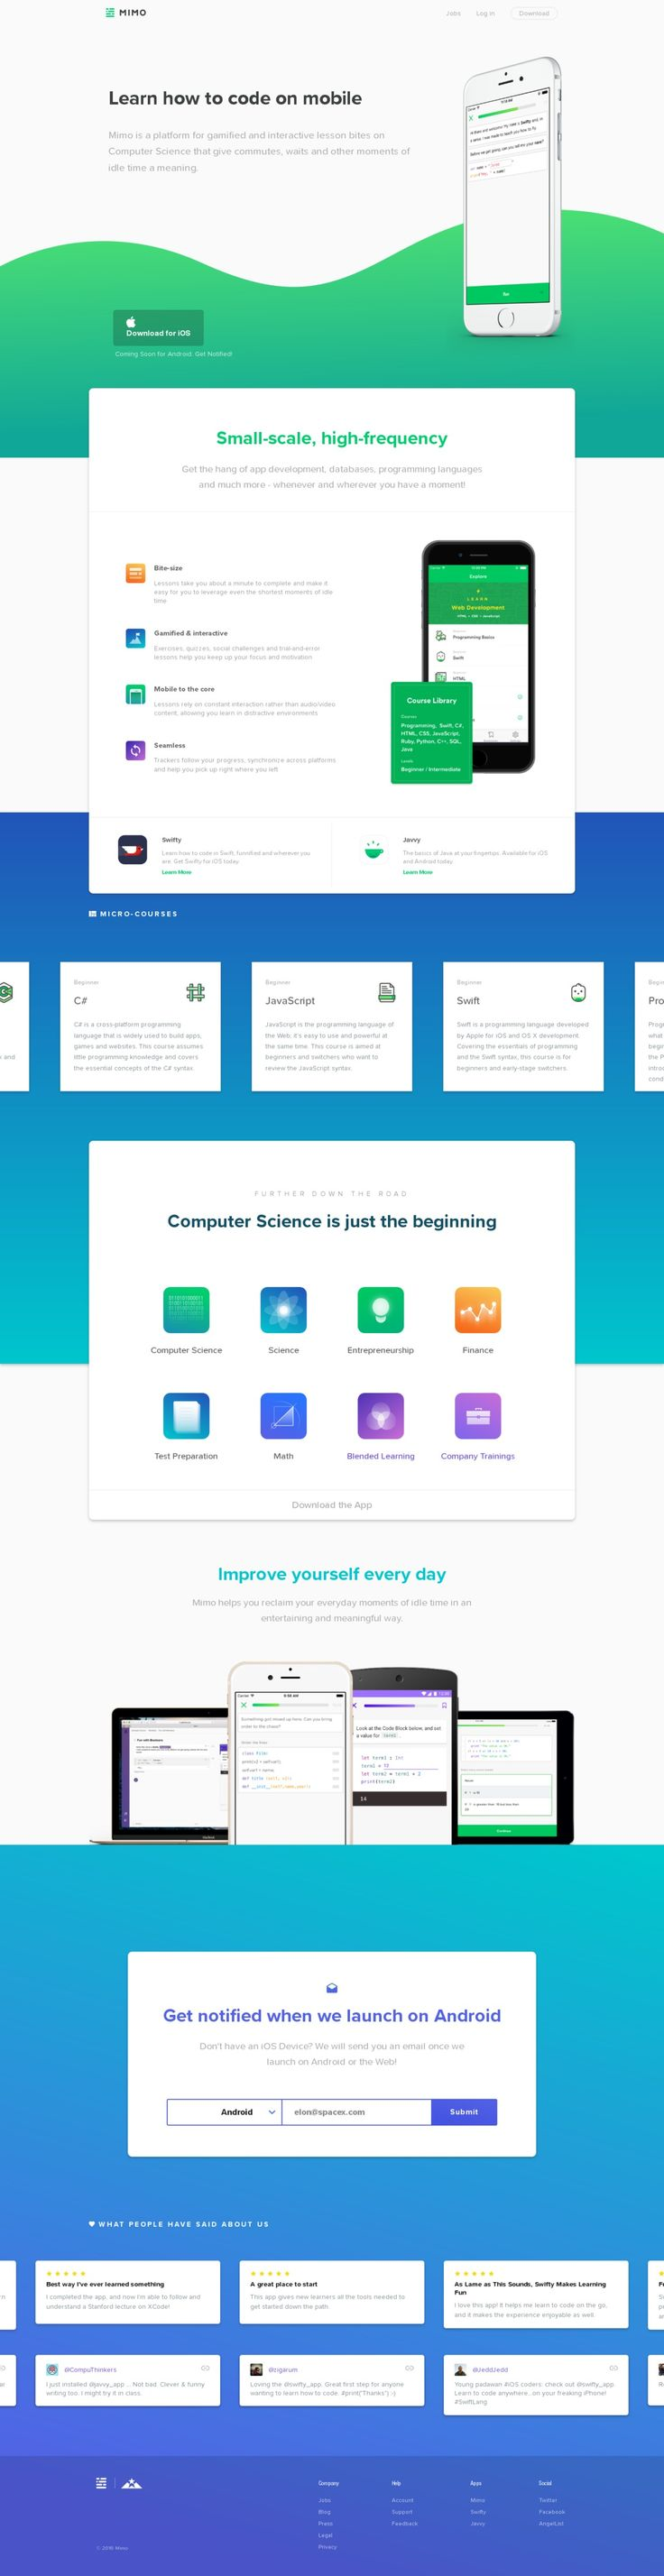 Mimo - Learn how to code on your phone